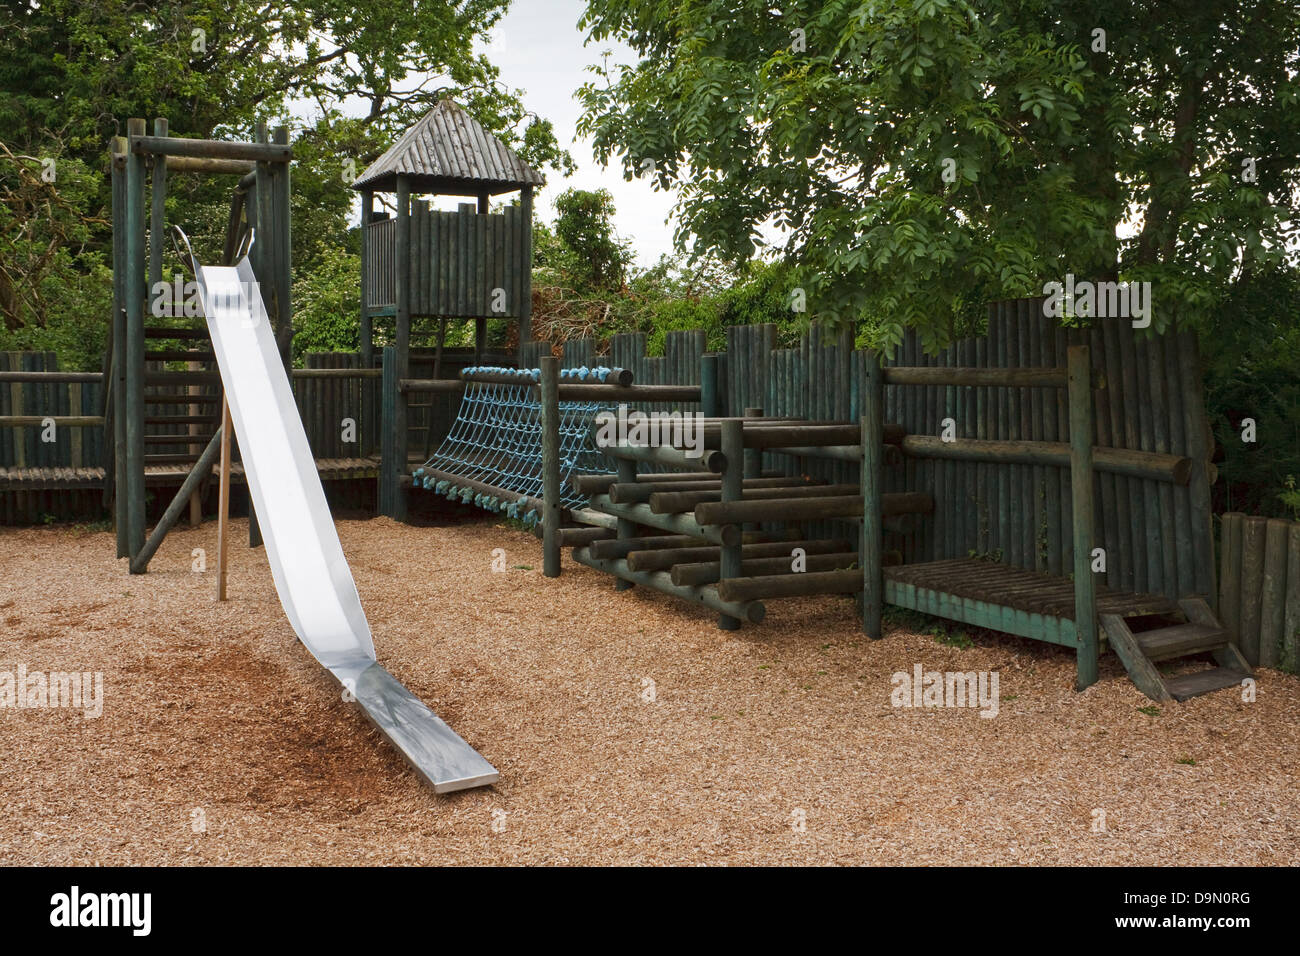 Adventure Play park for youngsters to enjoy with a slide, rope tunnel and castle turrets - Stock Image